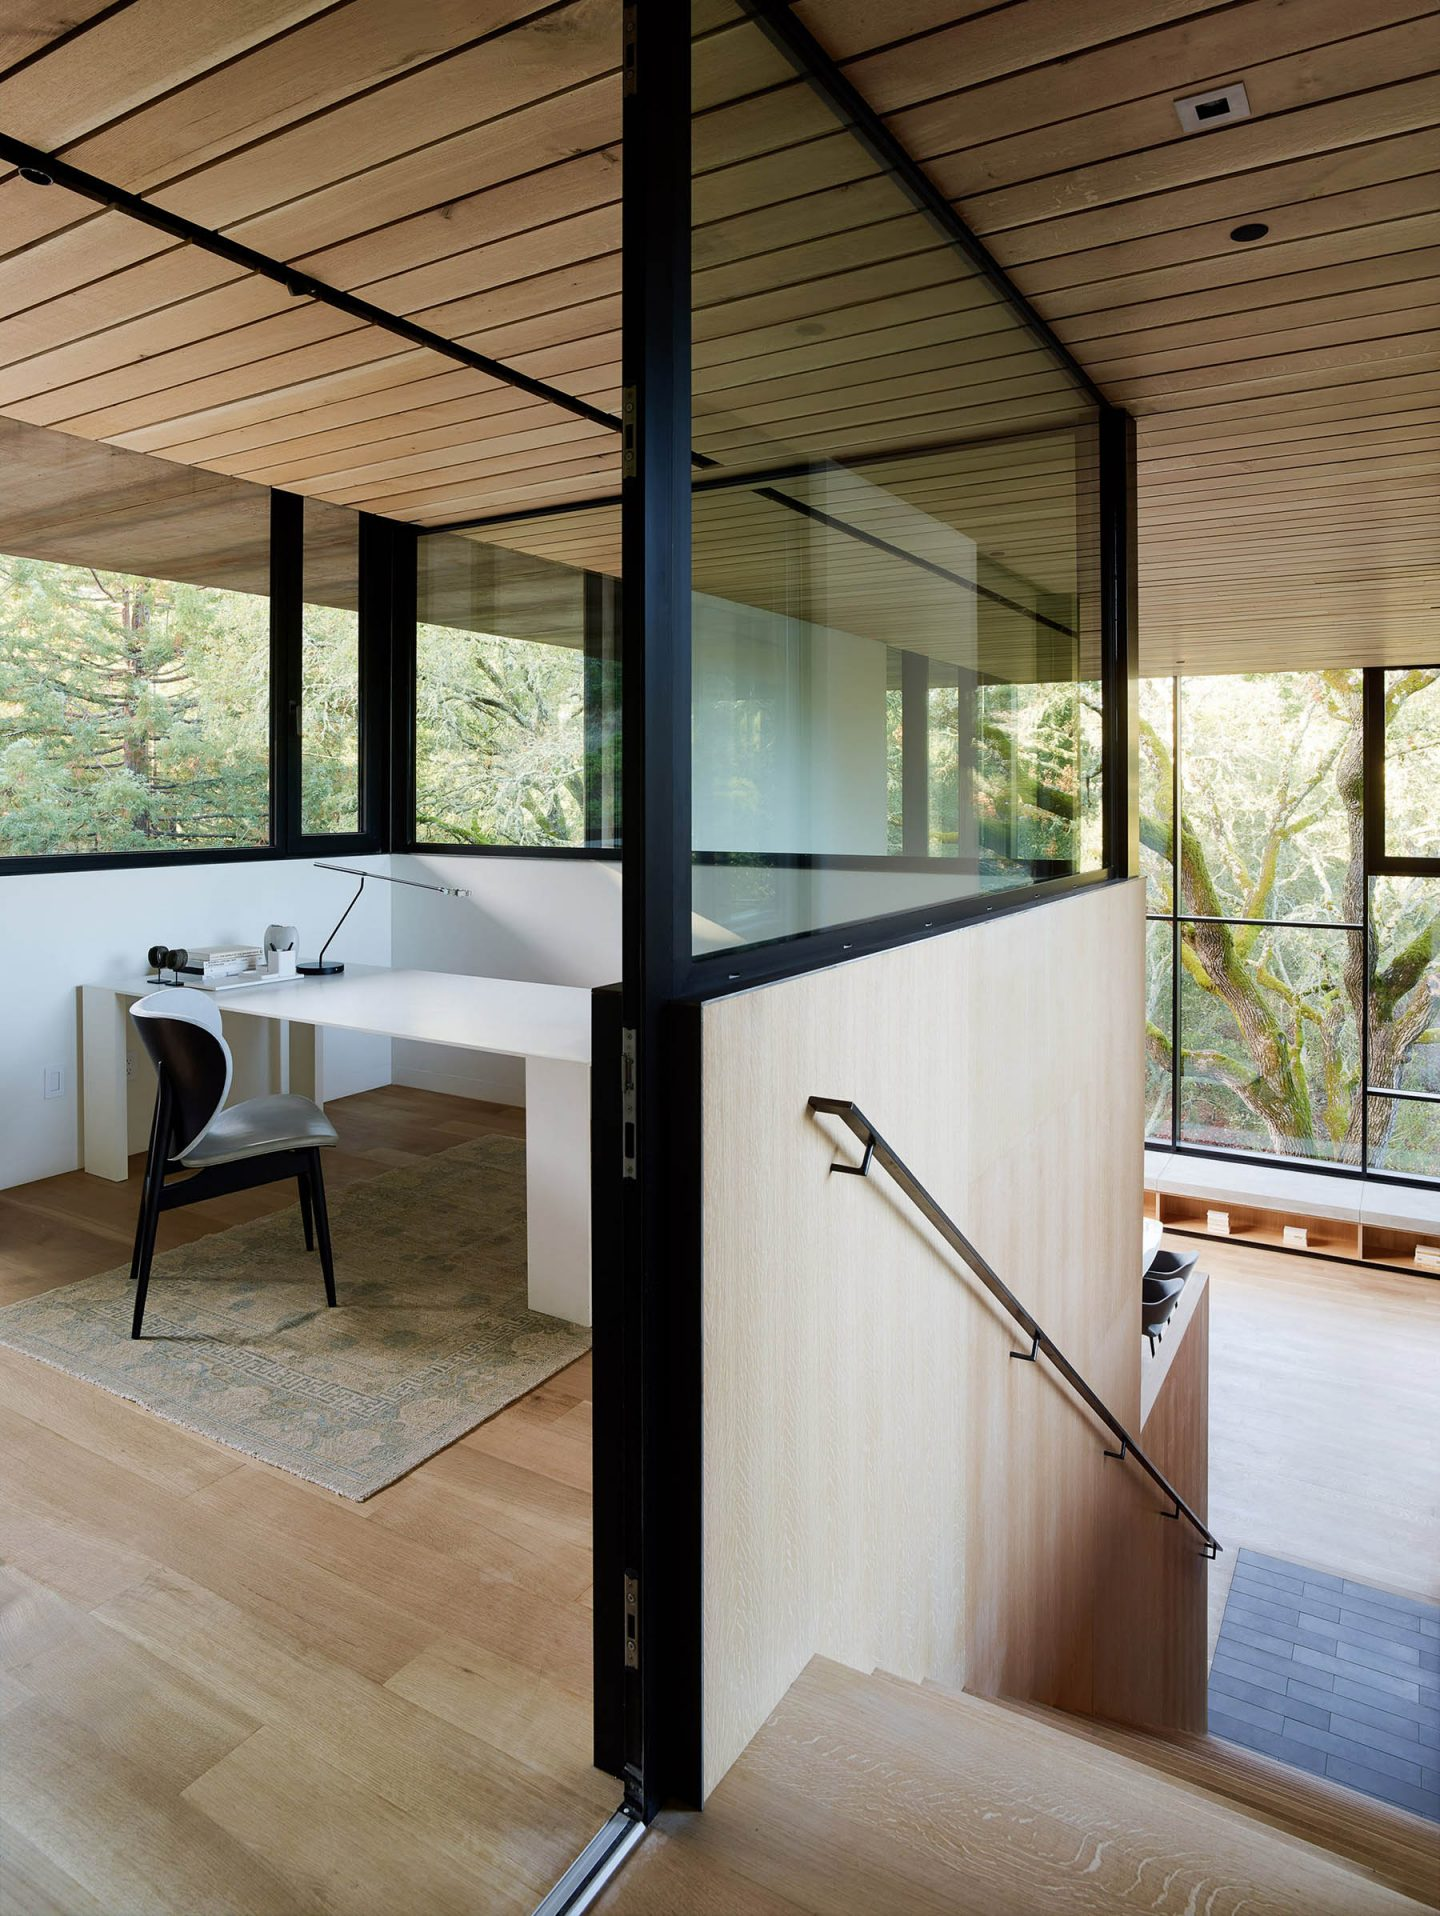 iGNANT-Architecture-Faulker-Architects-Weathering-Steel-Home-017